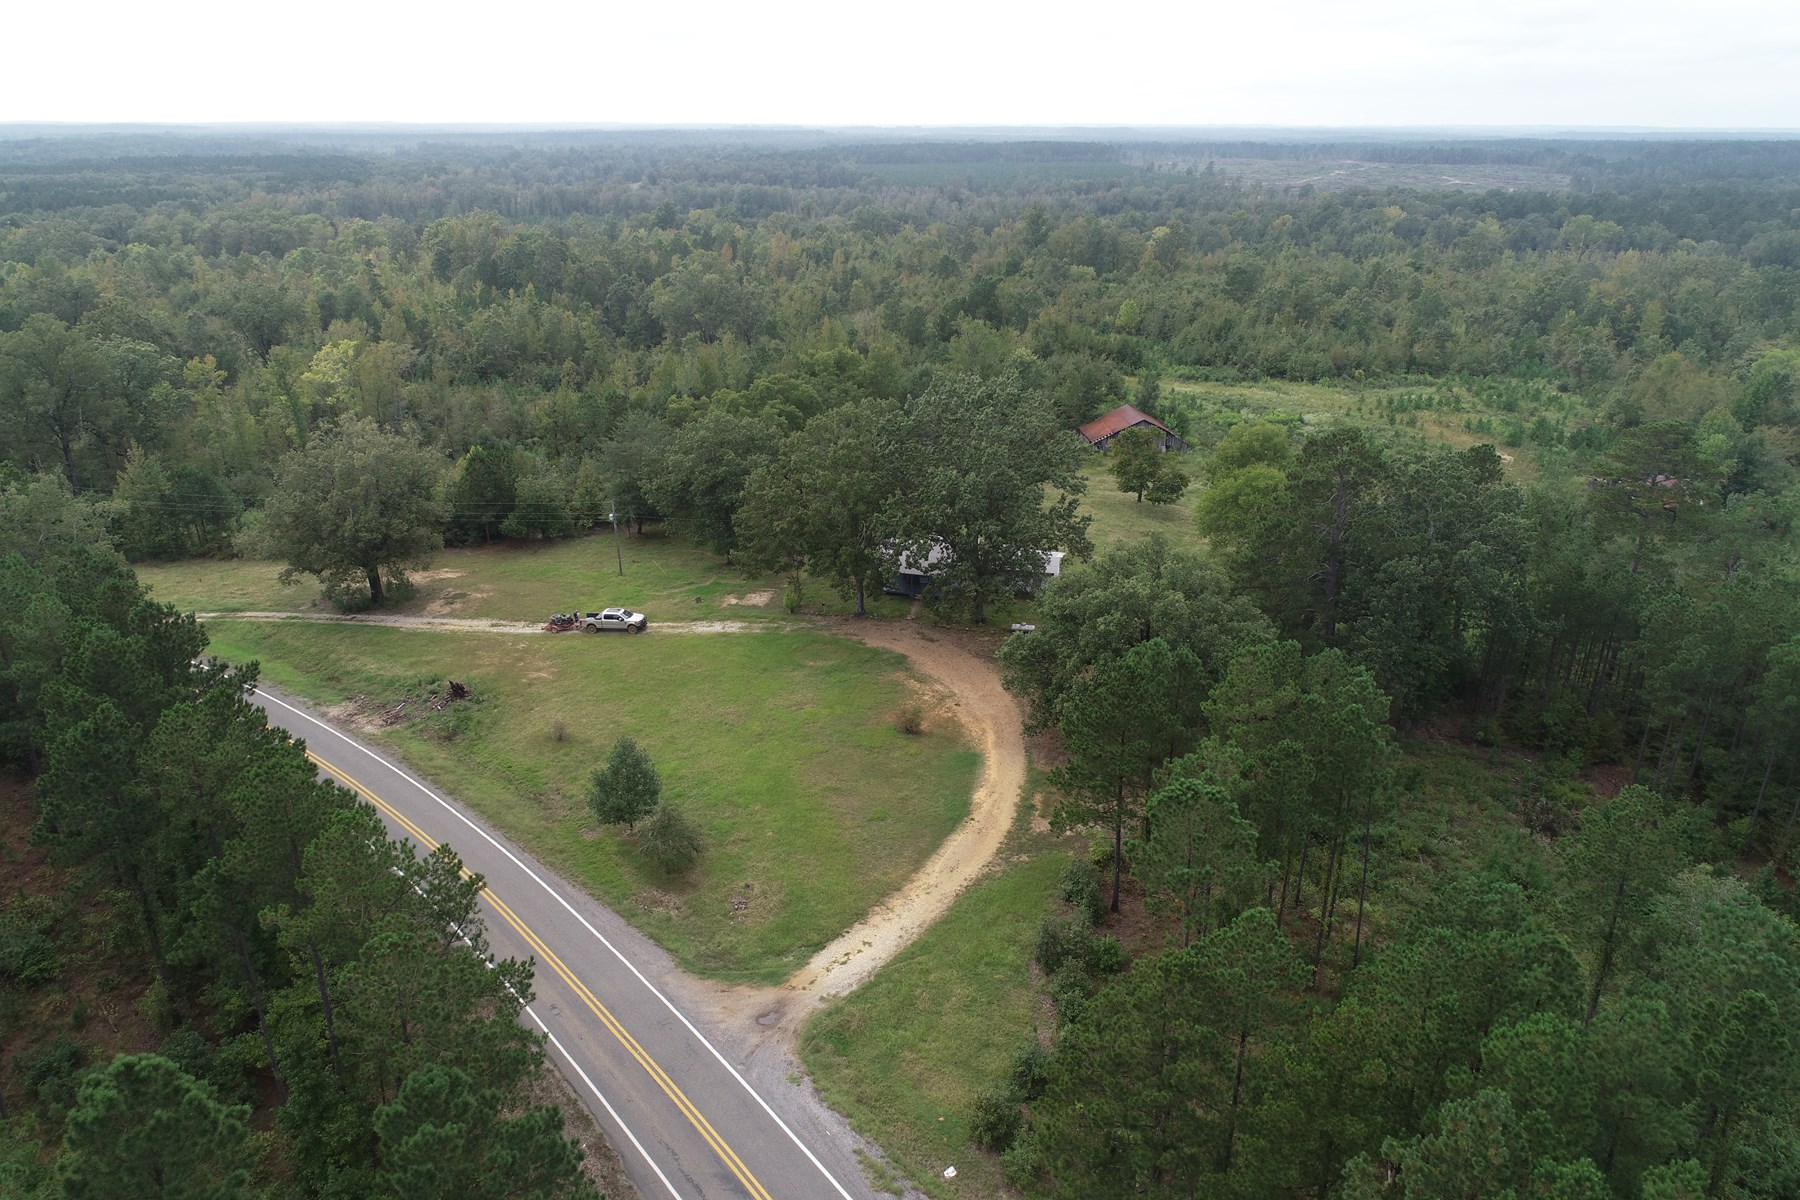 Home for sale with acreage in Clark County, AR, Hunting Land